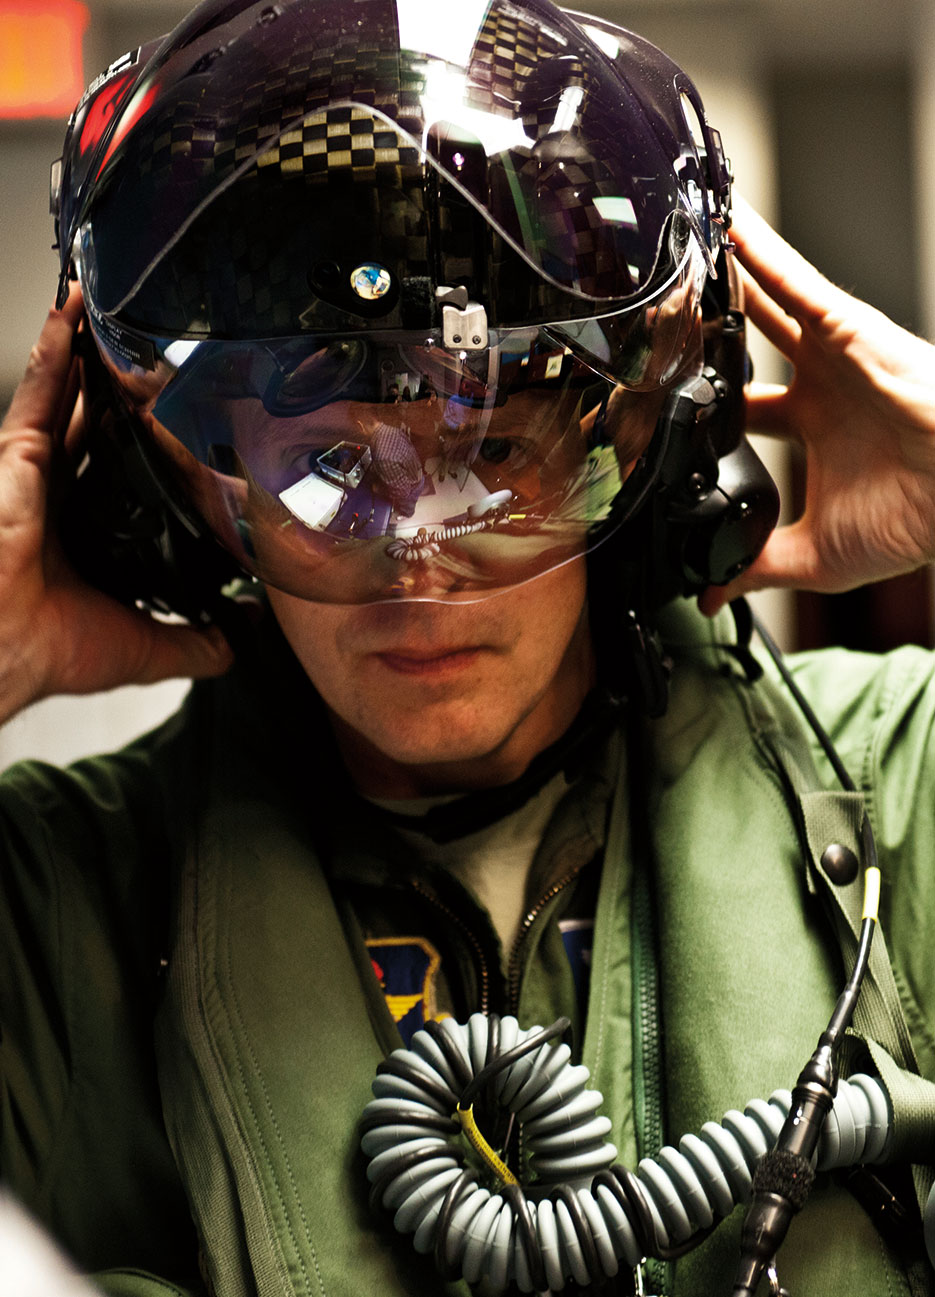 First Air Force pilot qualified to fly F-35 secures helmet prior to stepping to F-35A Lightning II joint strike fighter at Eglin Air Force Base (U.S. Air Force/Samuel King)